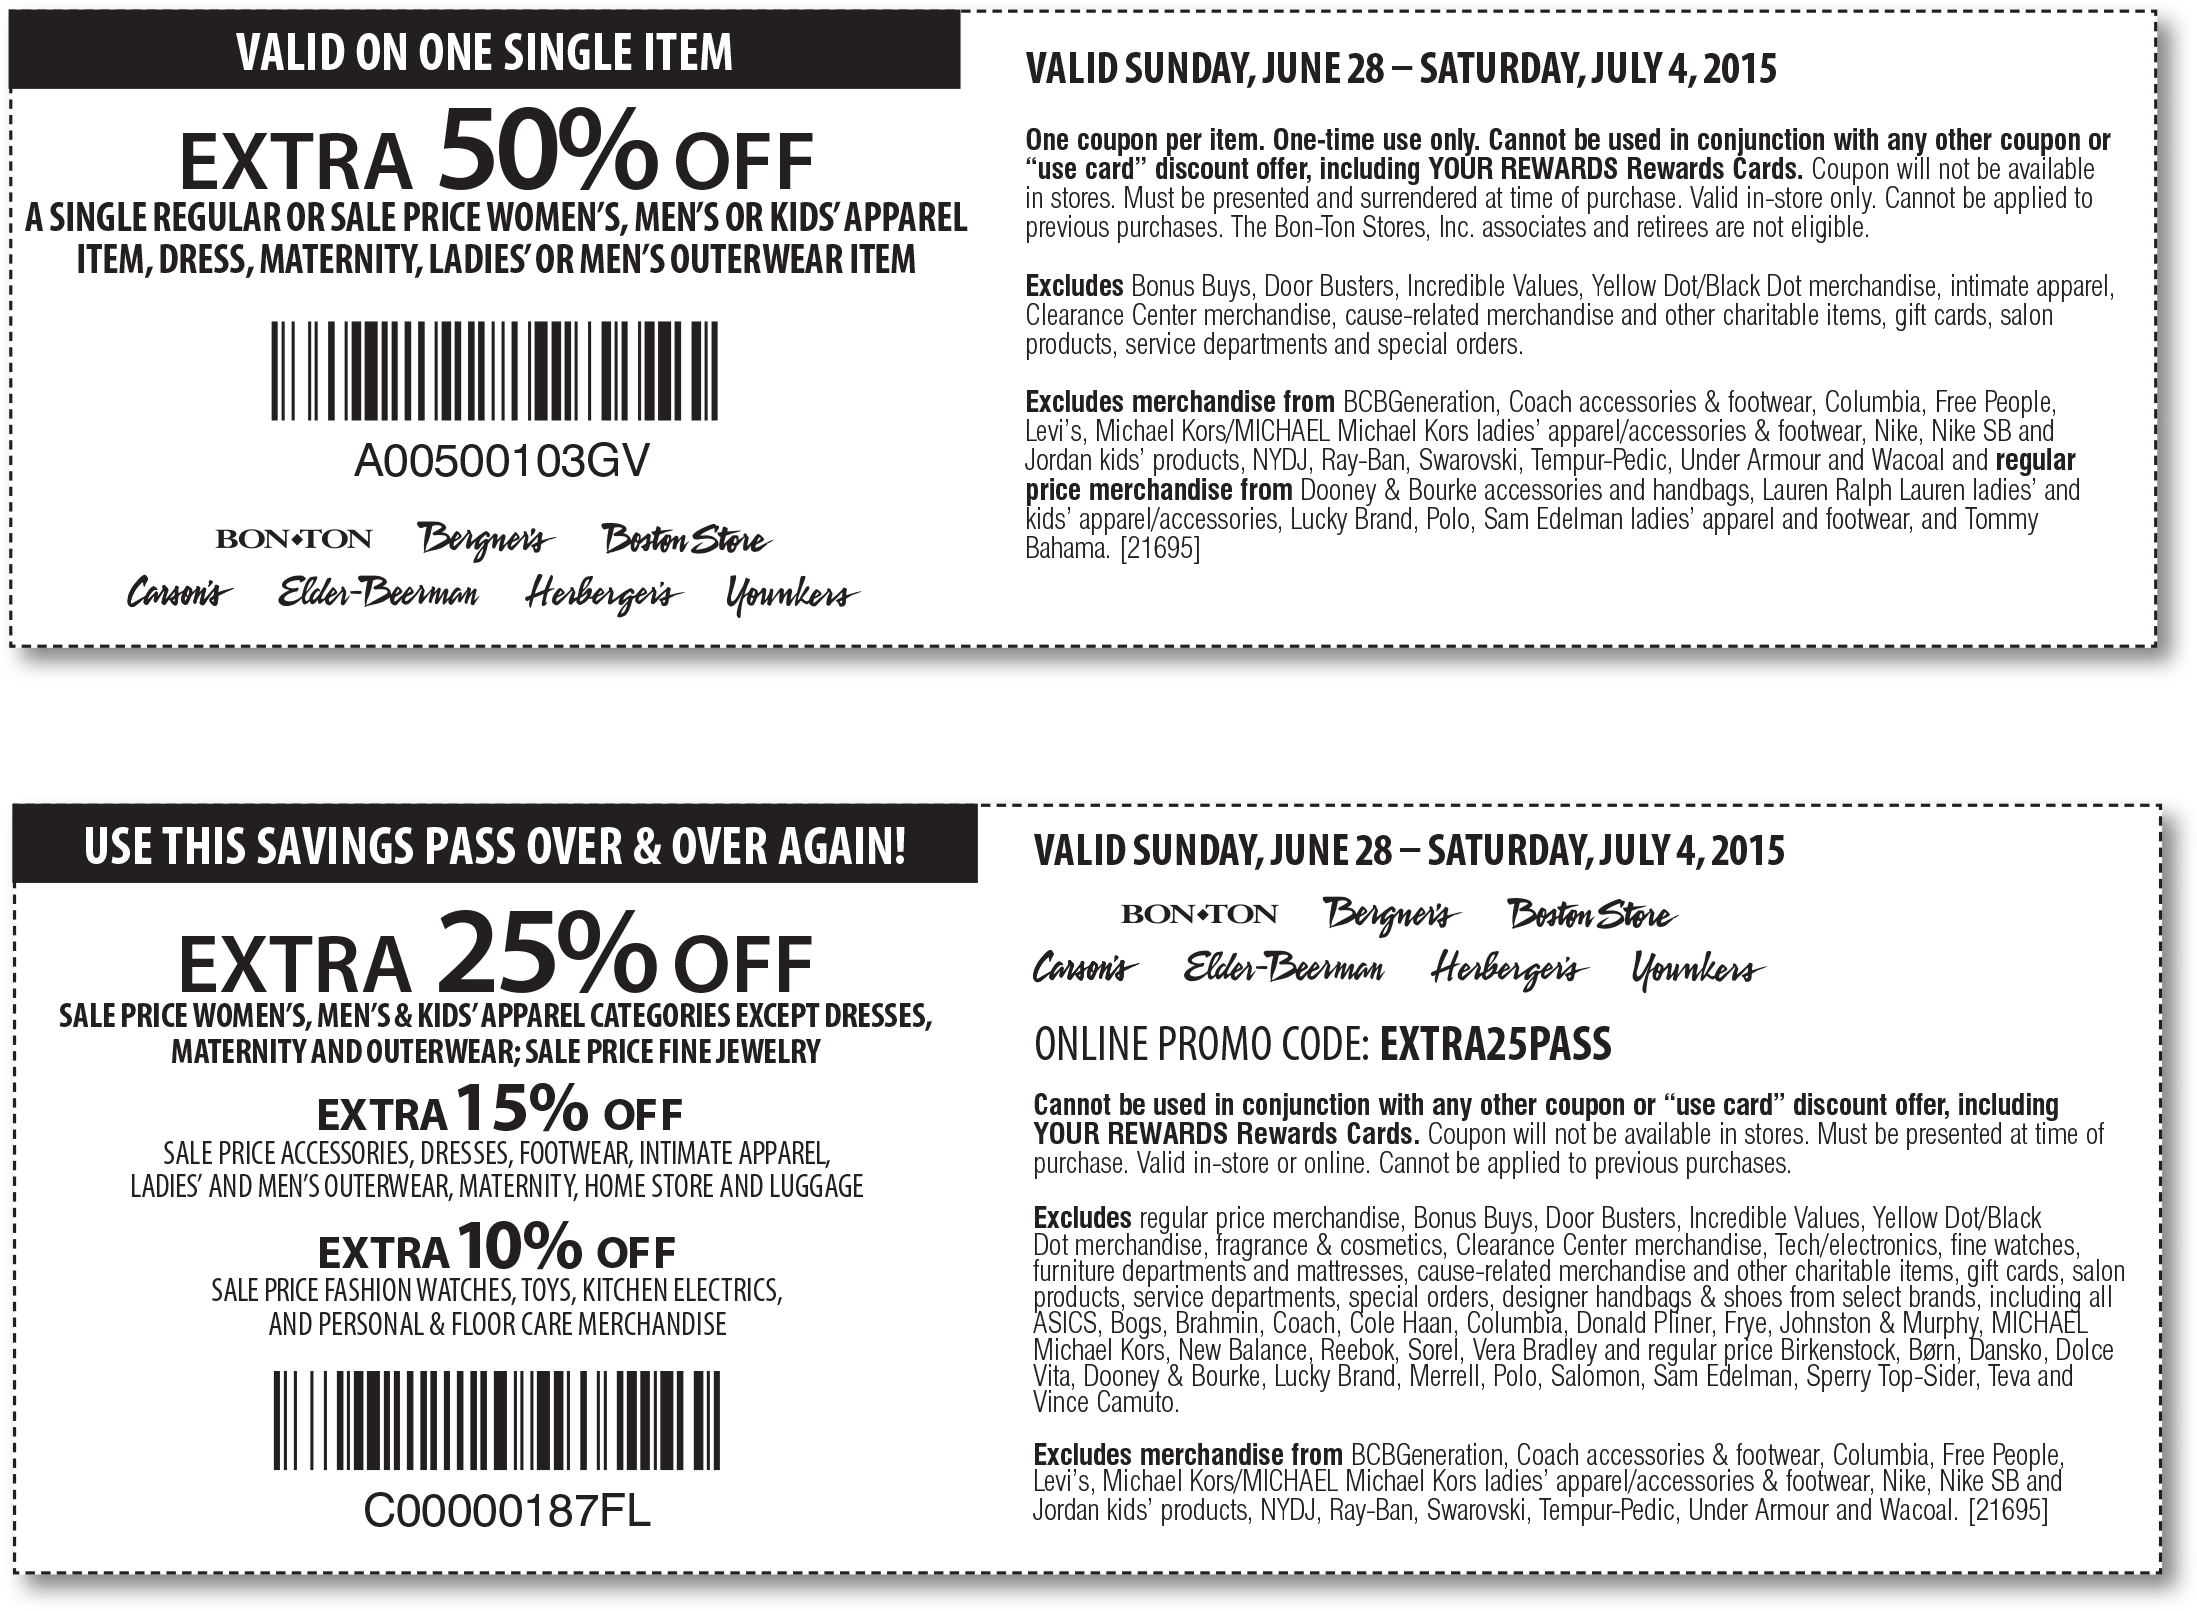 Carsons Coupon July 2017 Extra 50% off a single item & more at Carsons, Bon Ton & sister stores, or online via promo code EXTRA25PASS